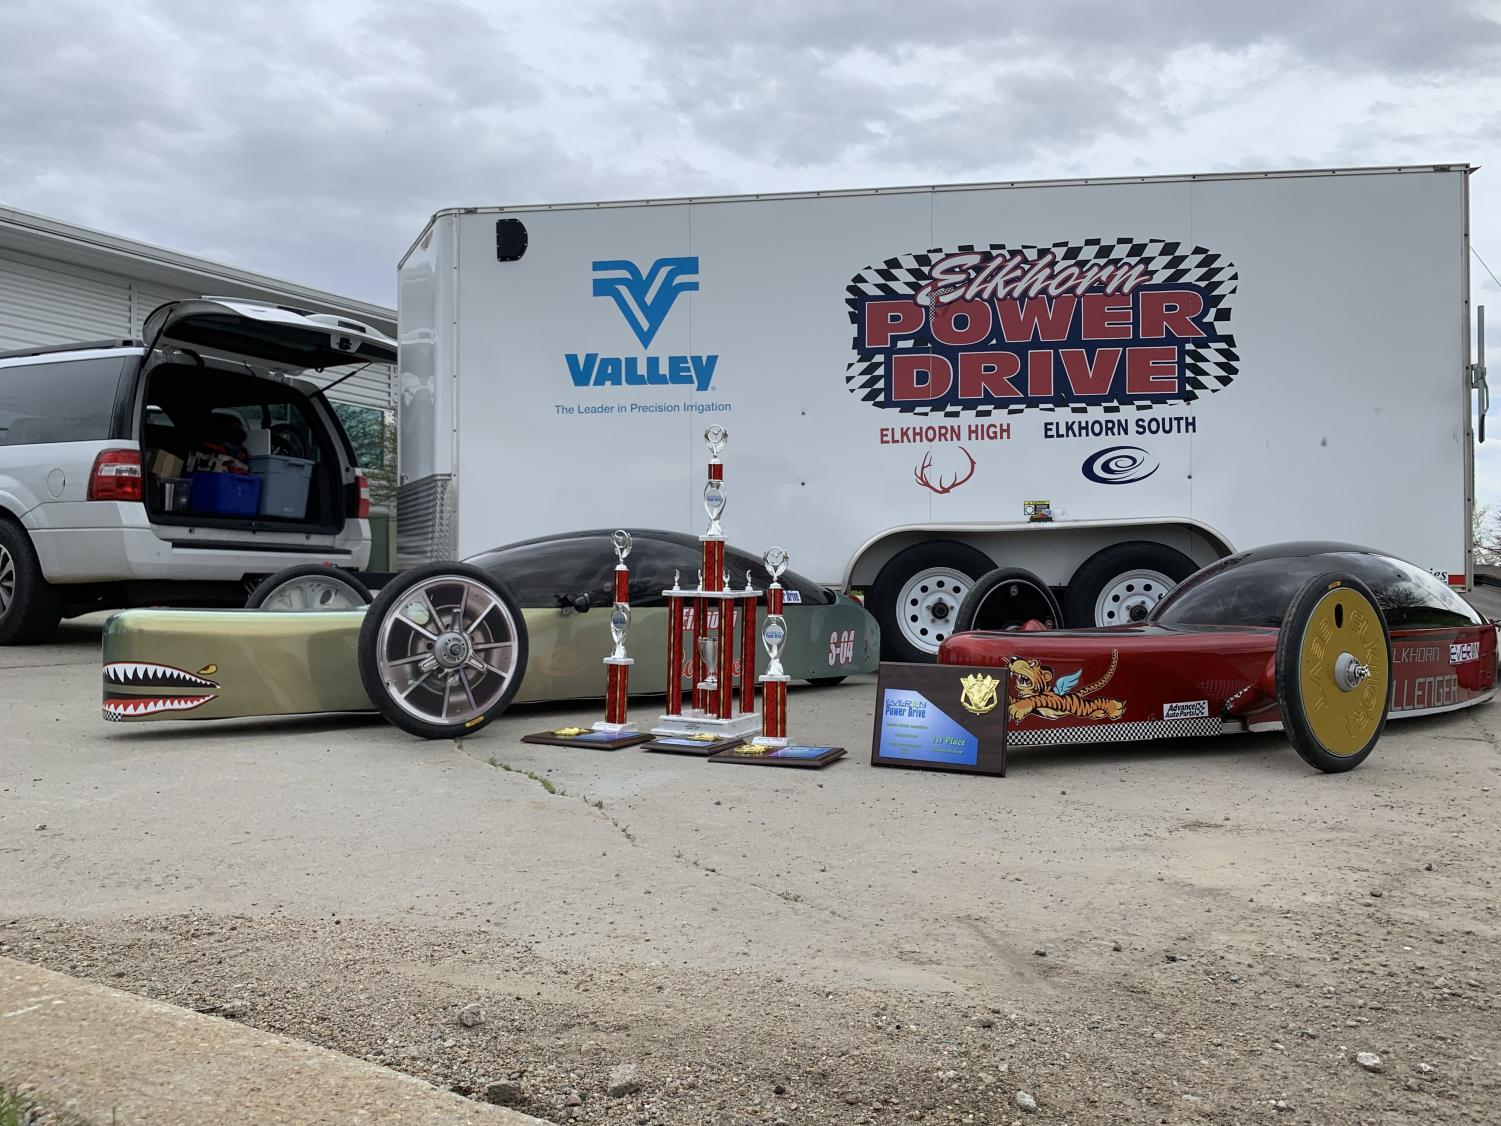 Elkhorn+Power+Drive+displays+their+trophies+and+cars+after+winning+a+4th+consecutive+state+championship.+The+team+designs%2C+builds+are+races+two+electric+vehicles.